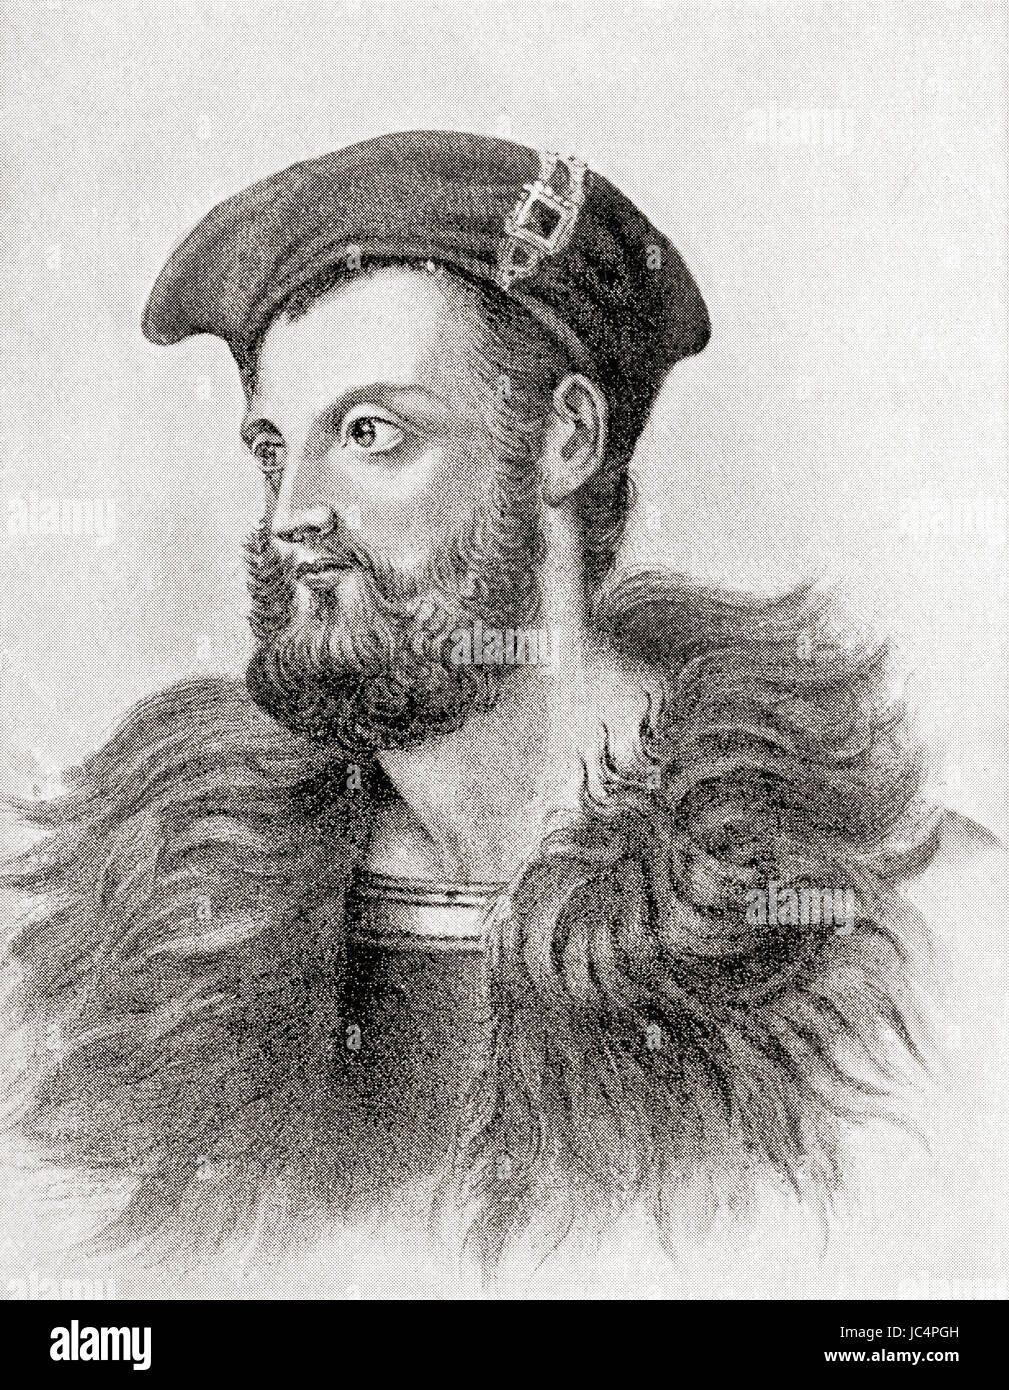 Owen Roe O'Neill, c. 1585 – 1649.  Seventeenth-century soldier and one of the most famous of the O'Neill - Stock Image